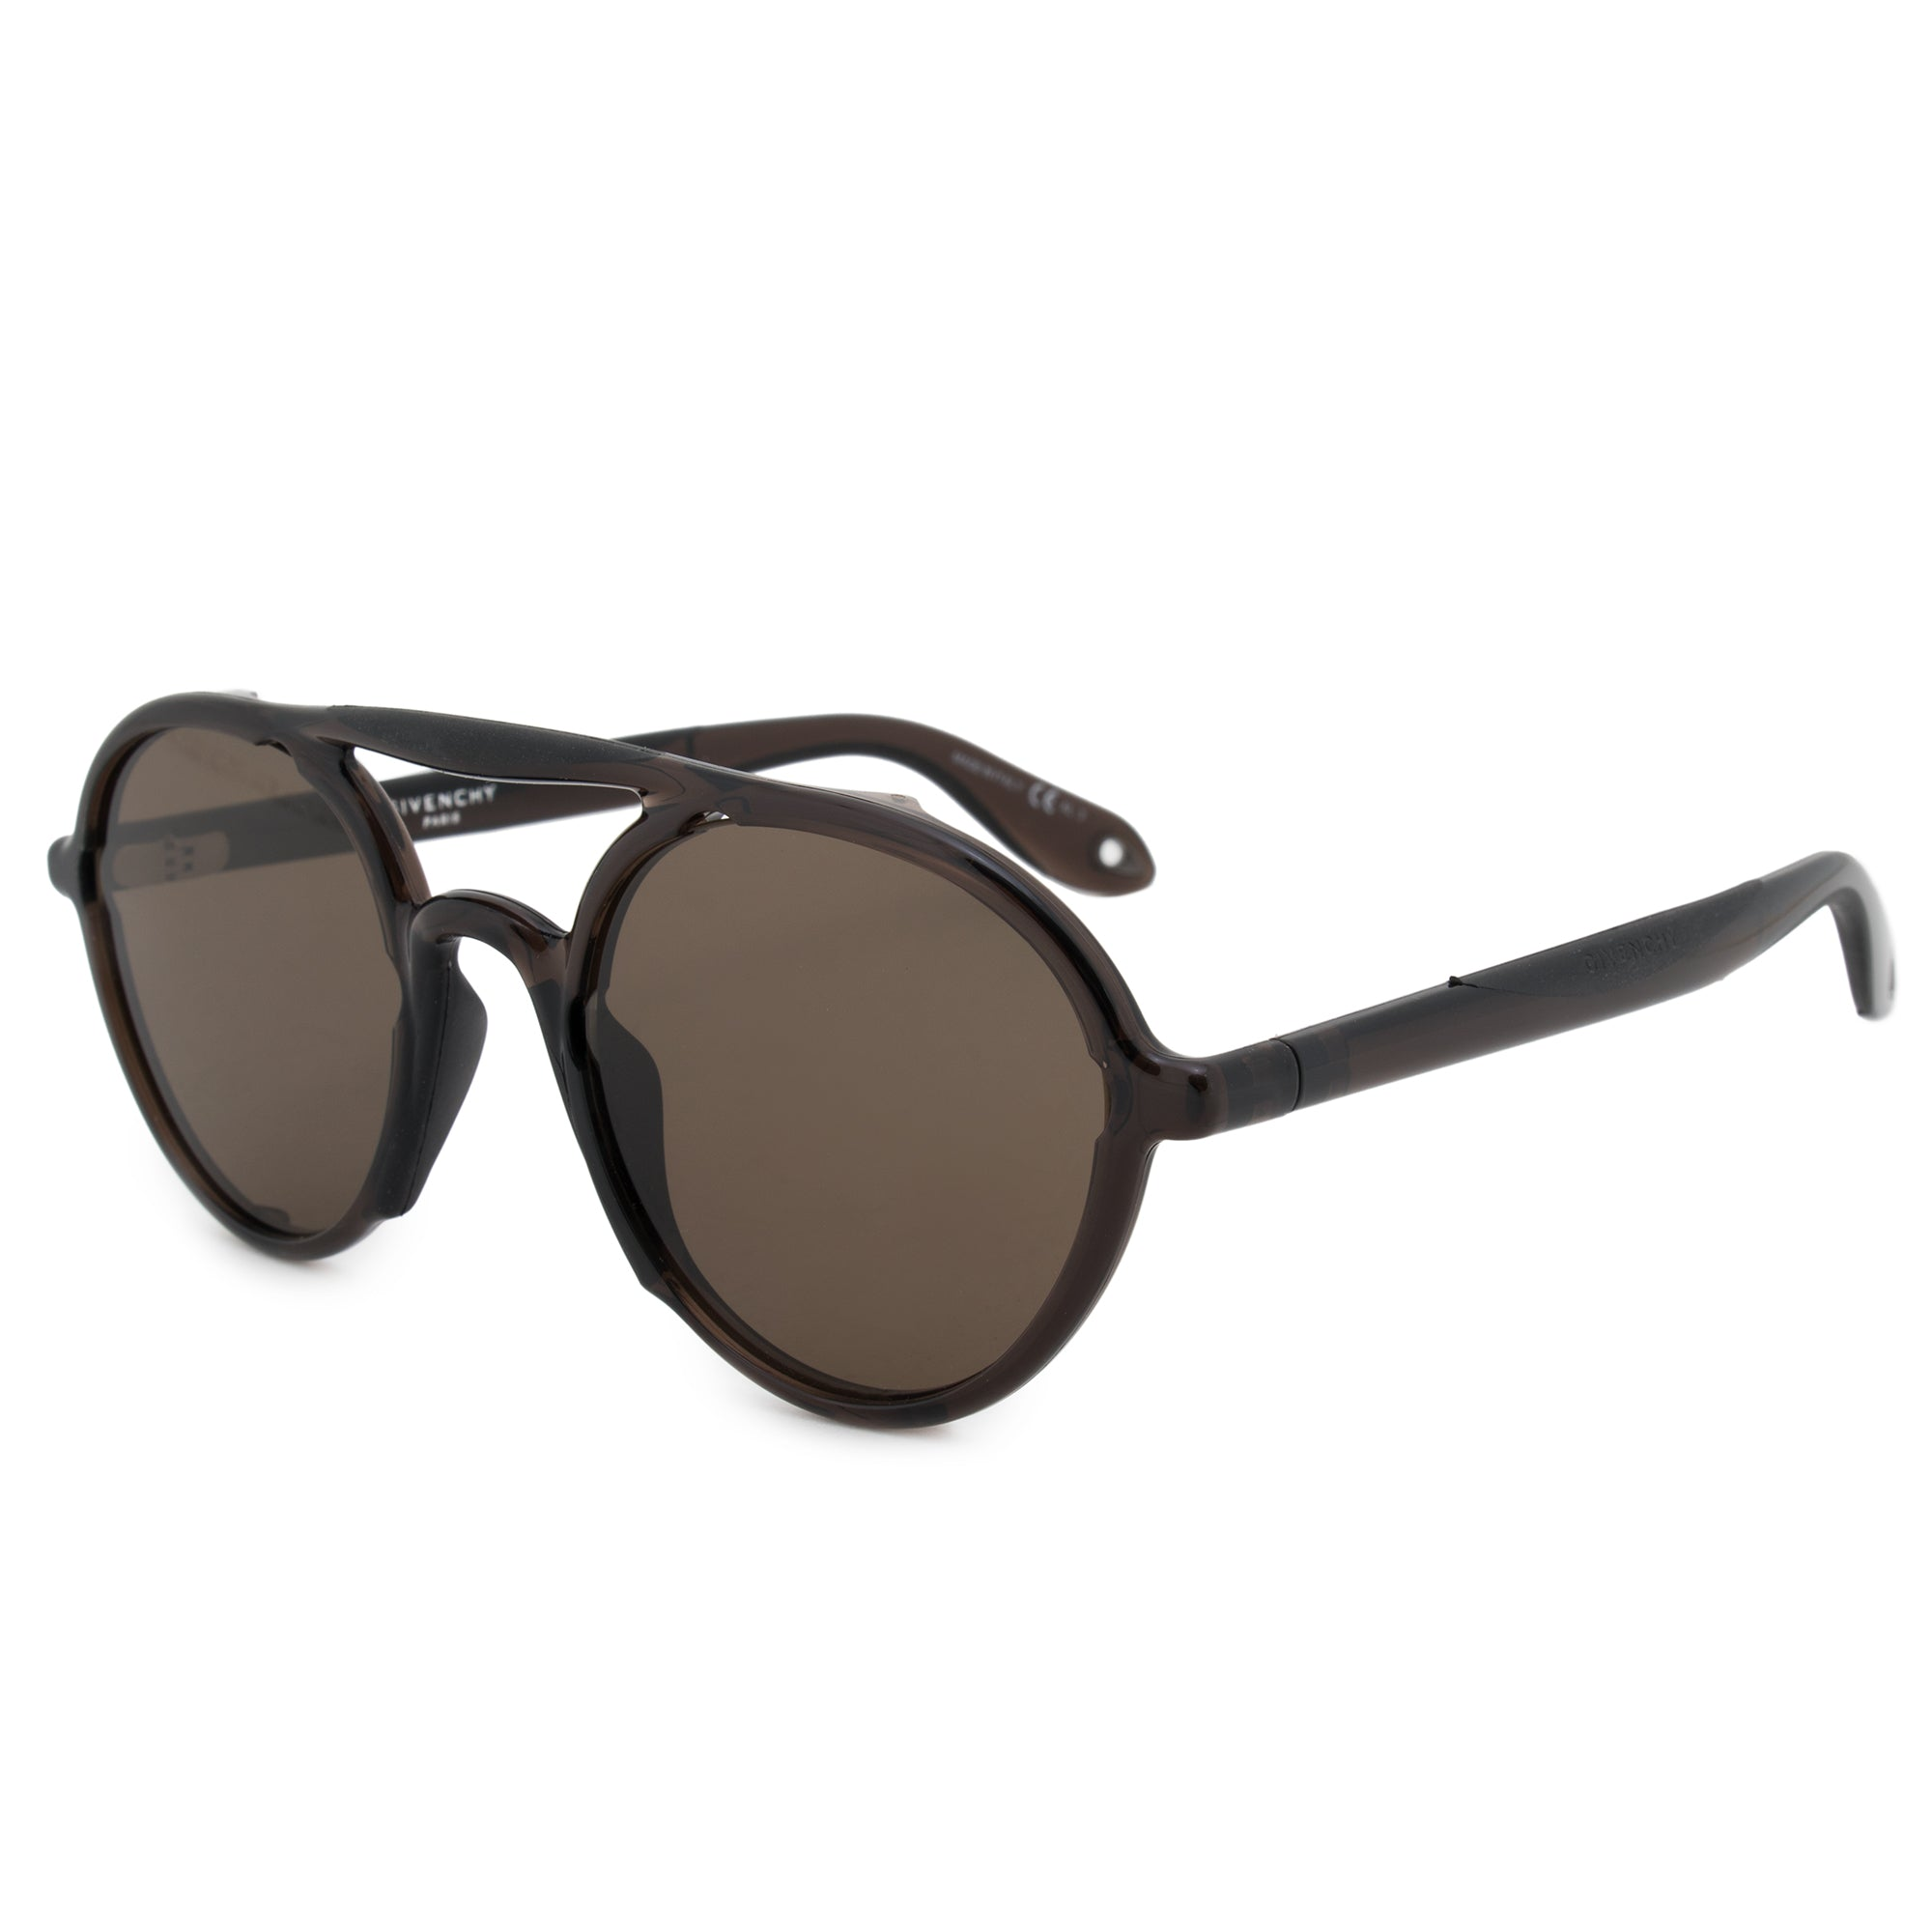 Givenchy Aviator Sunglasses GV7038S TIR/E4 50